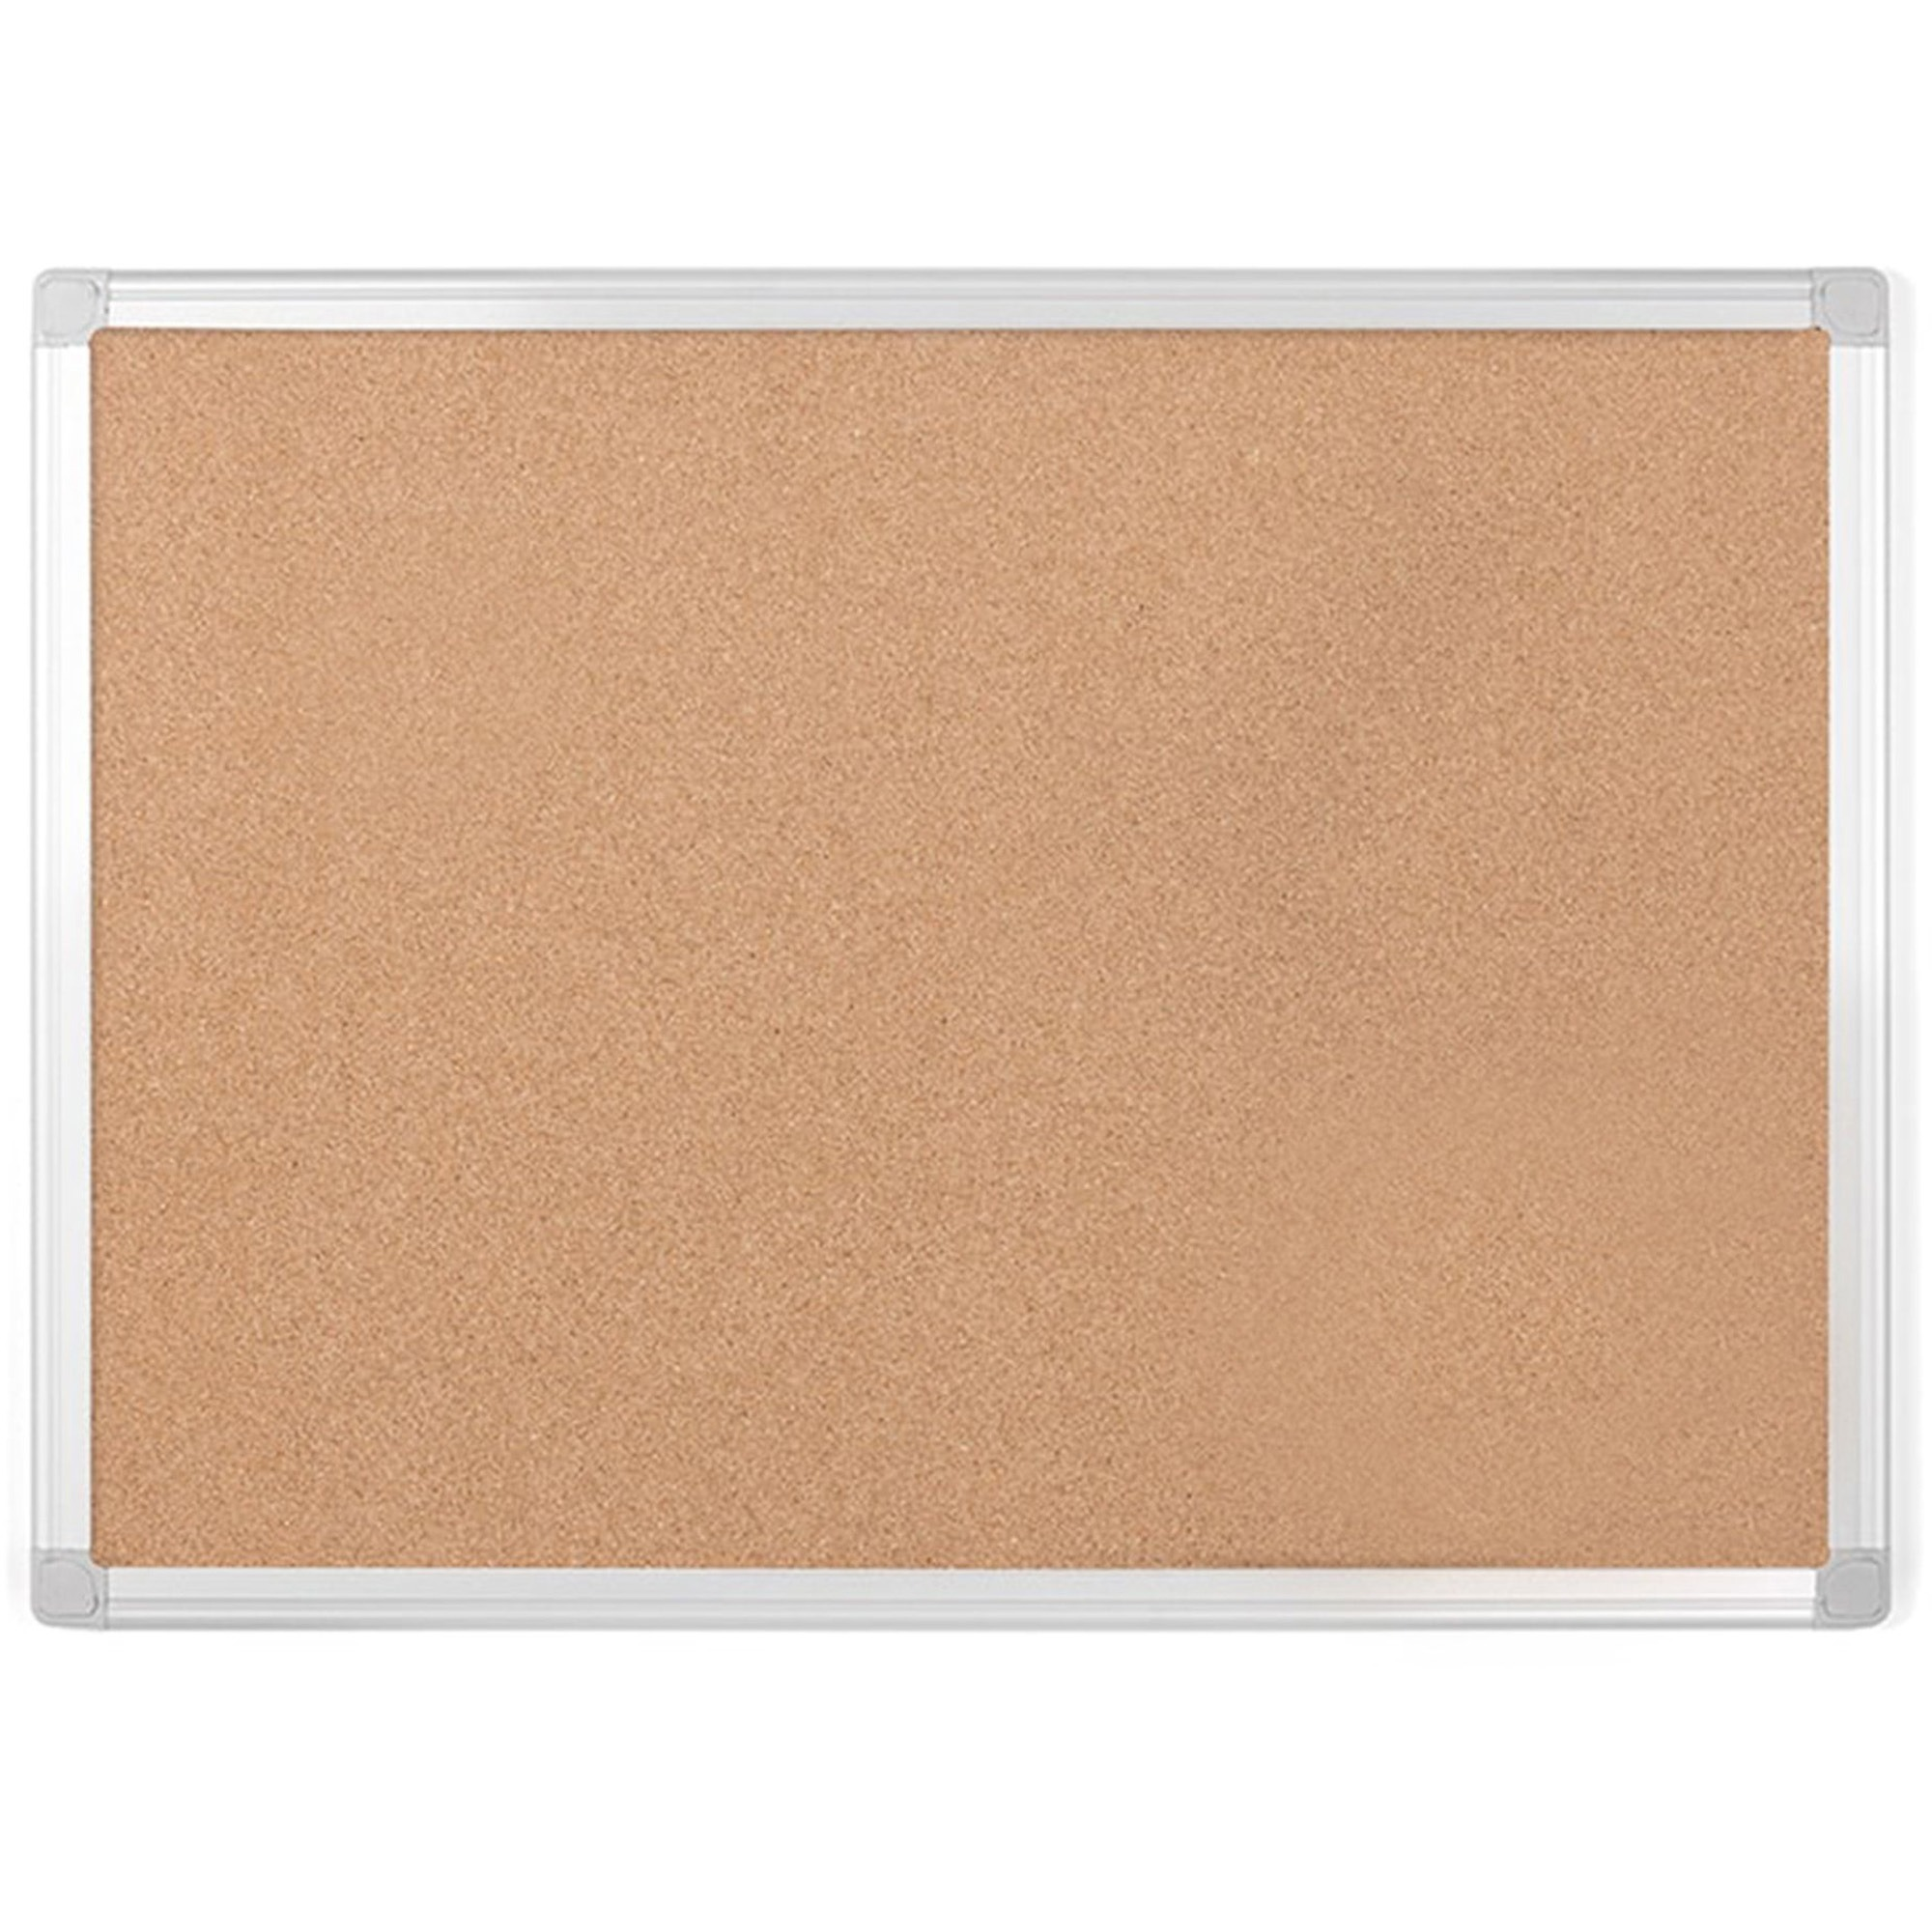 Bi-silque S.a Mastervision Aluminum Frame Recycled Cork Boards - 48 Height X 72 Width - Cork Surface - Aluminum Frame - 1 Each